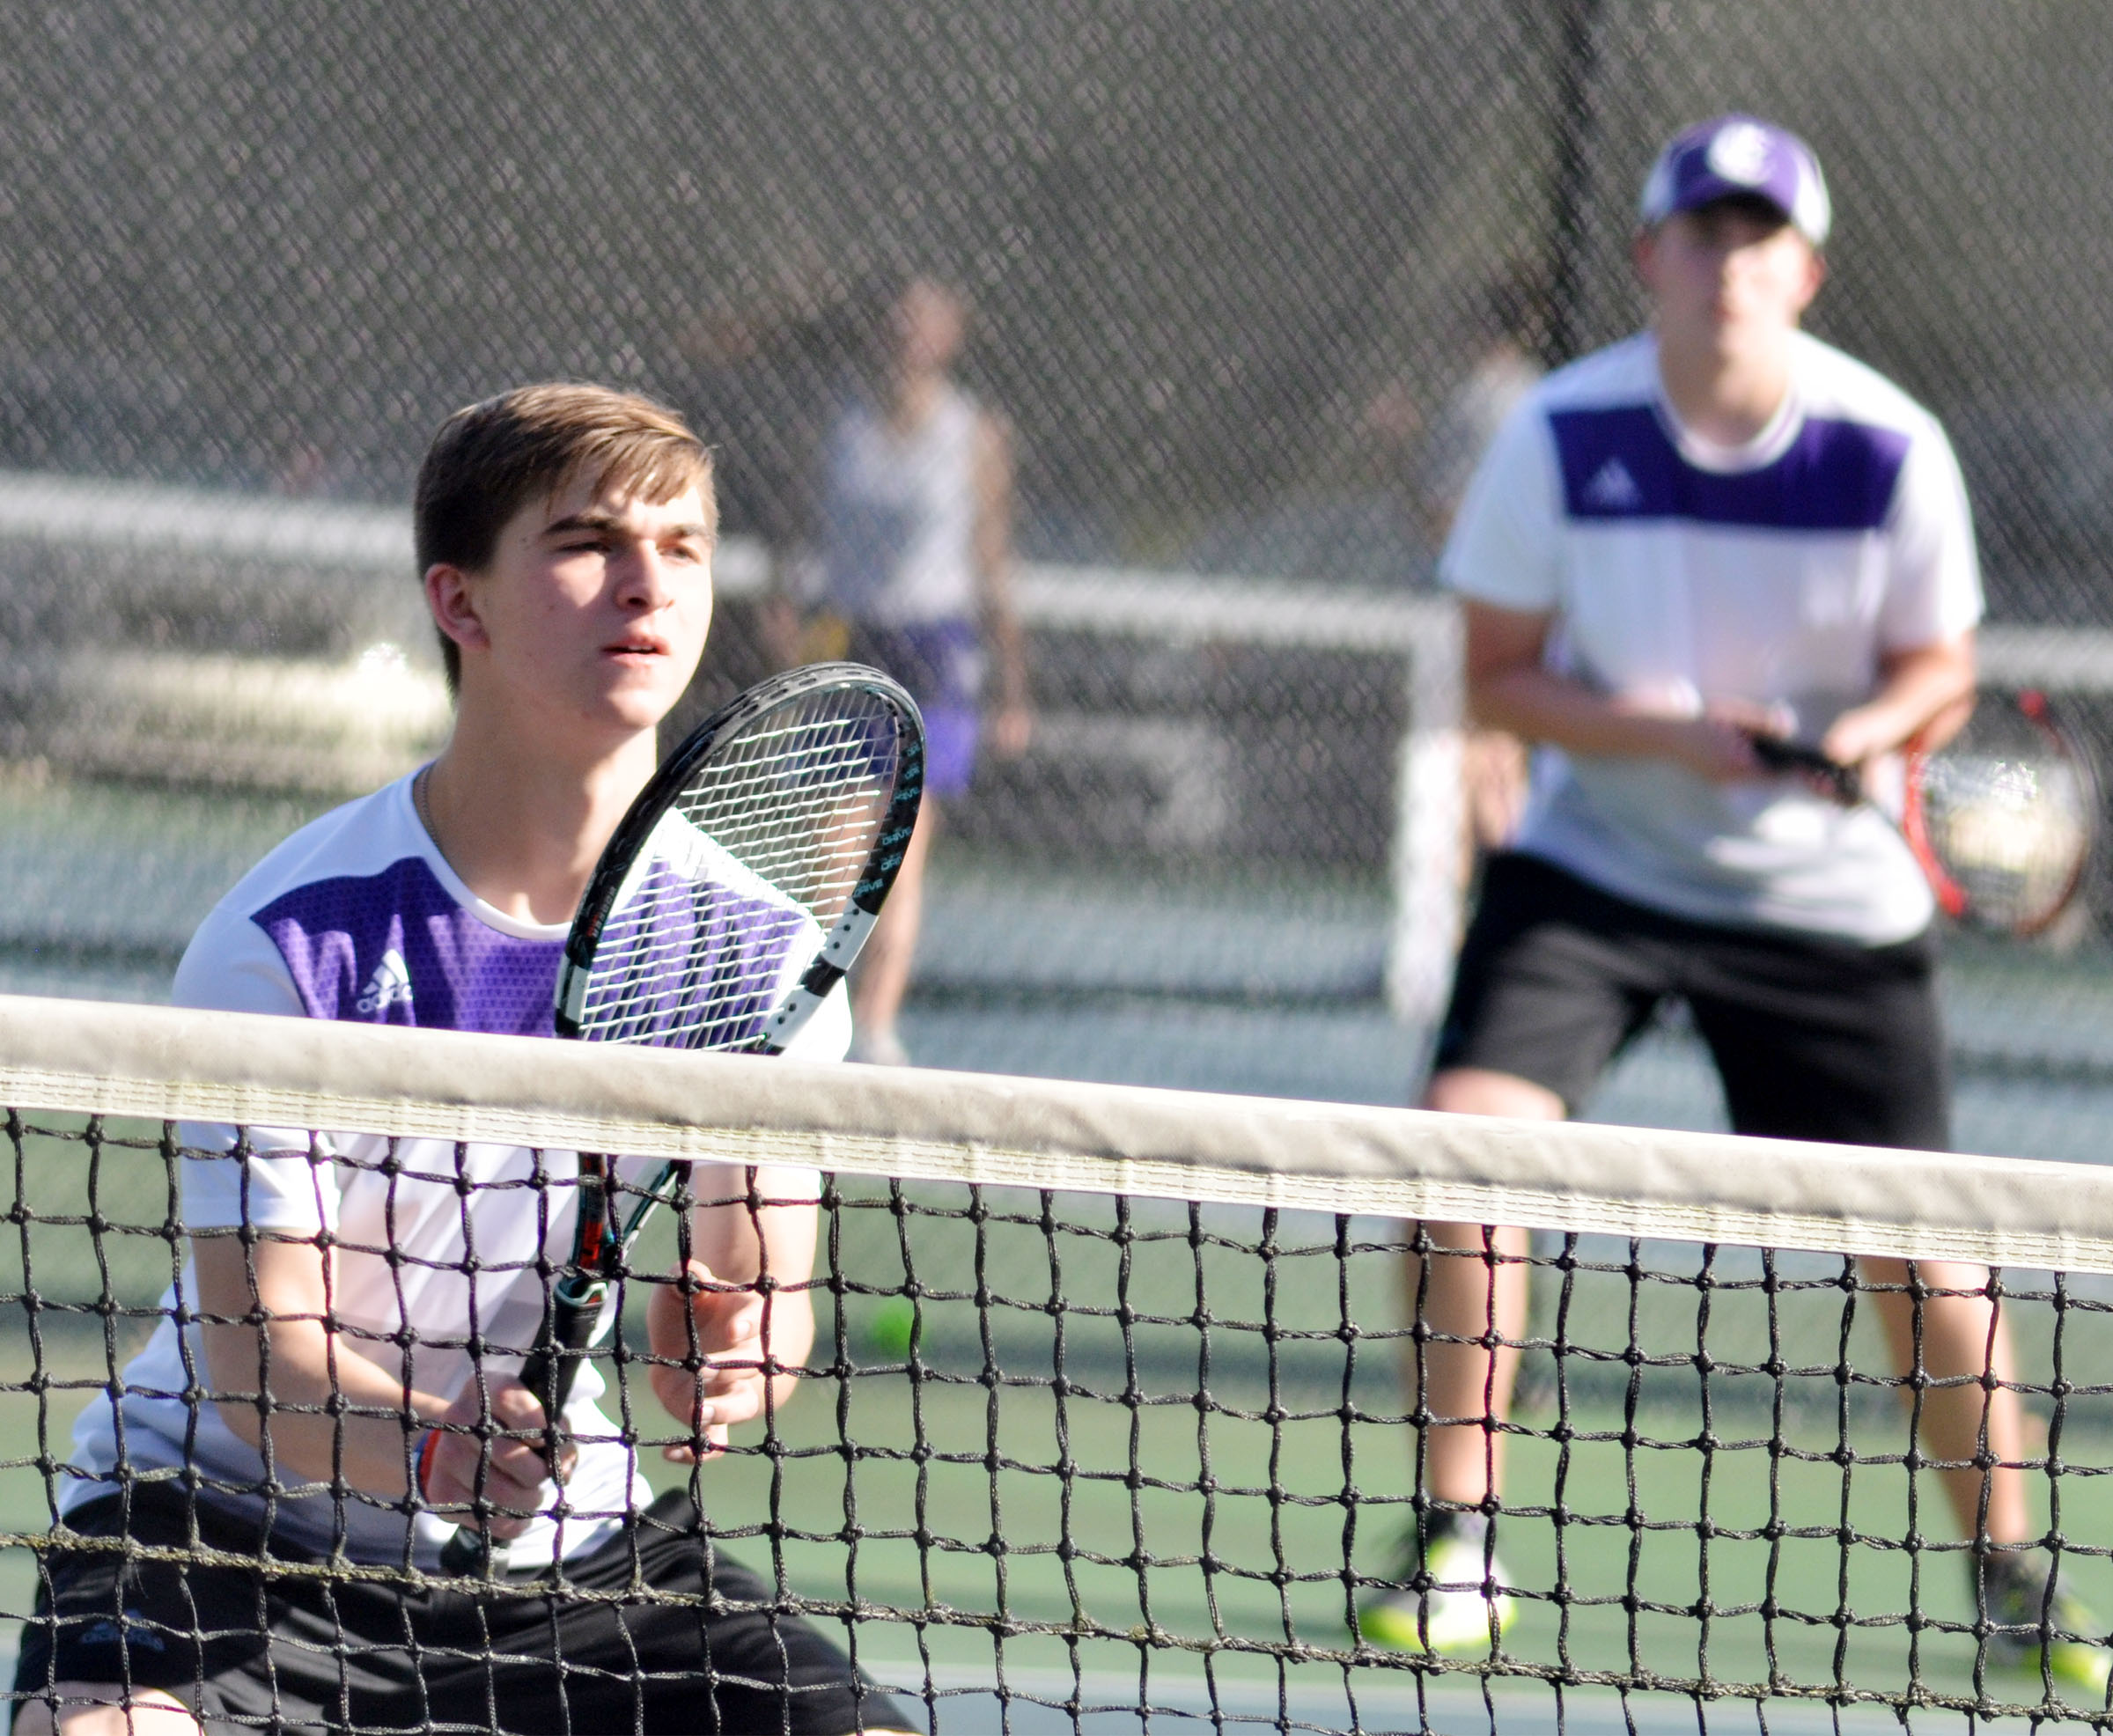 CHS junior Cass Kidwell guards the net as doubles partner Zack Settle, a senior, looks on.